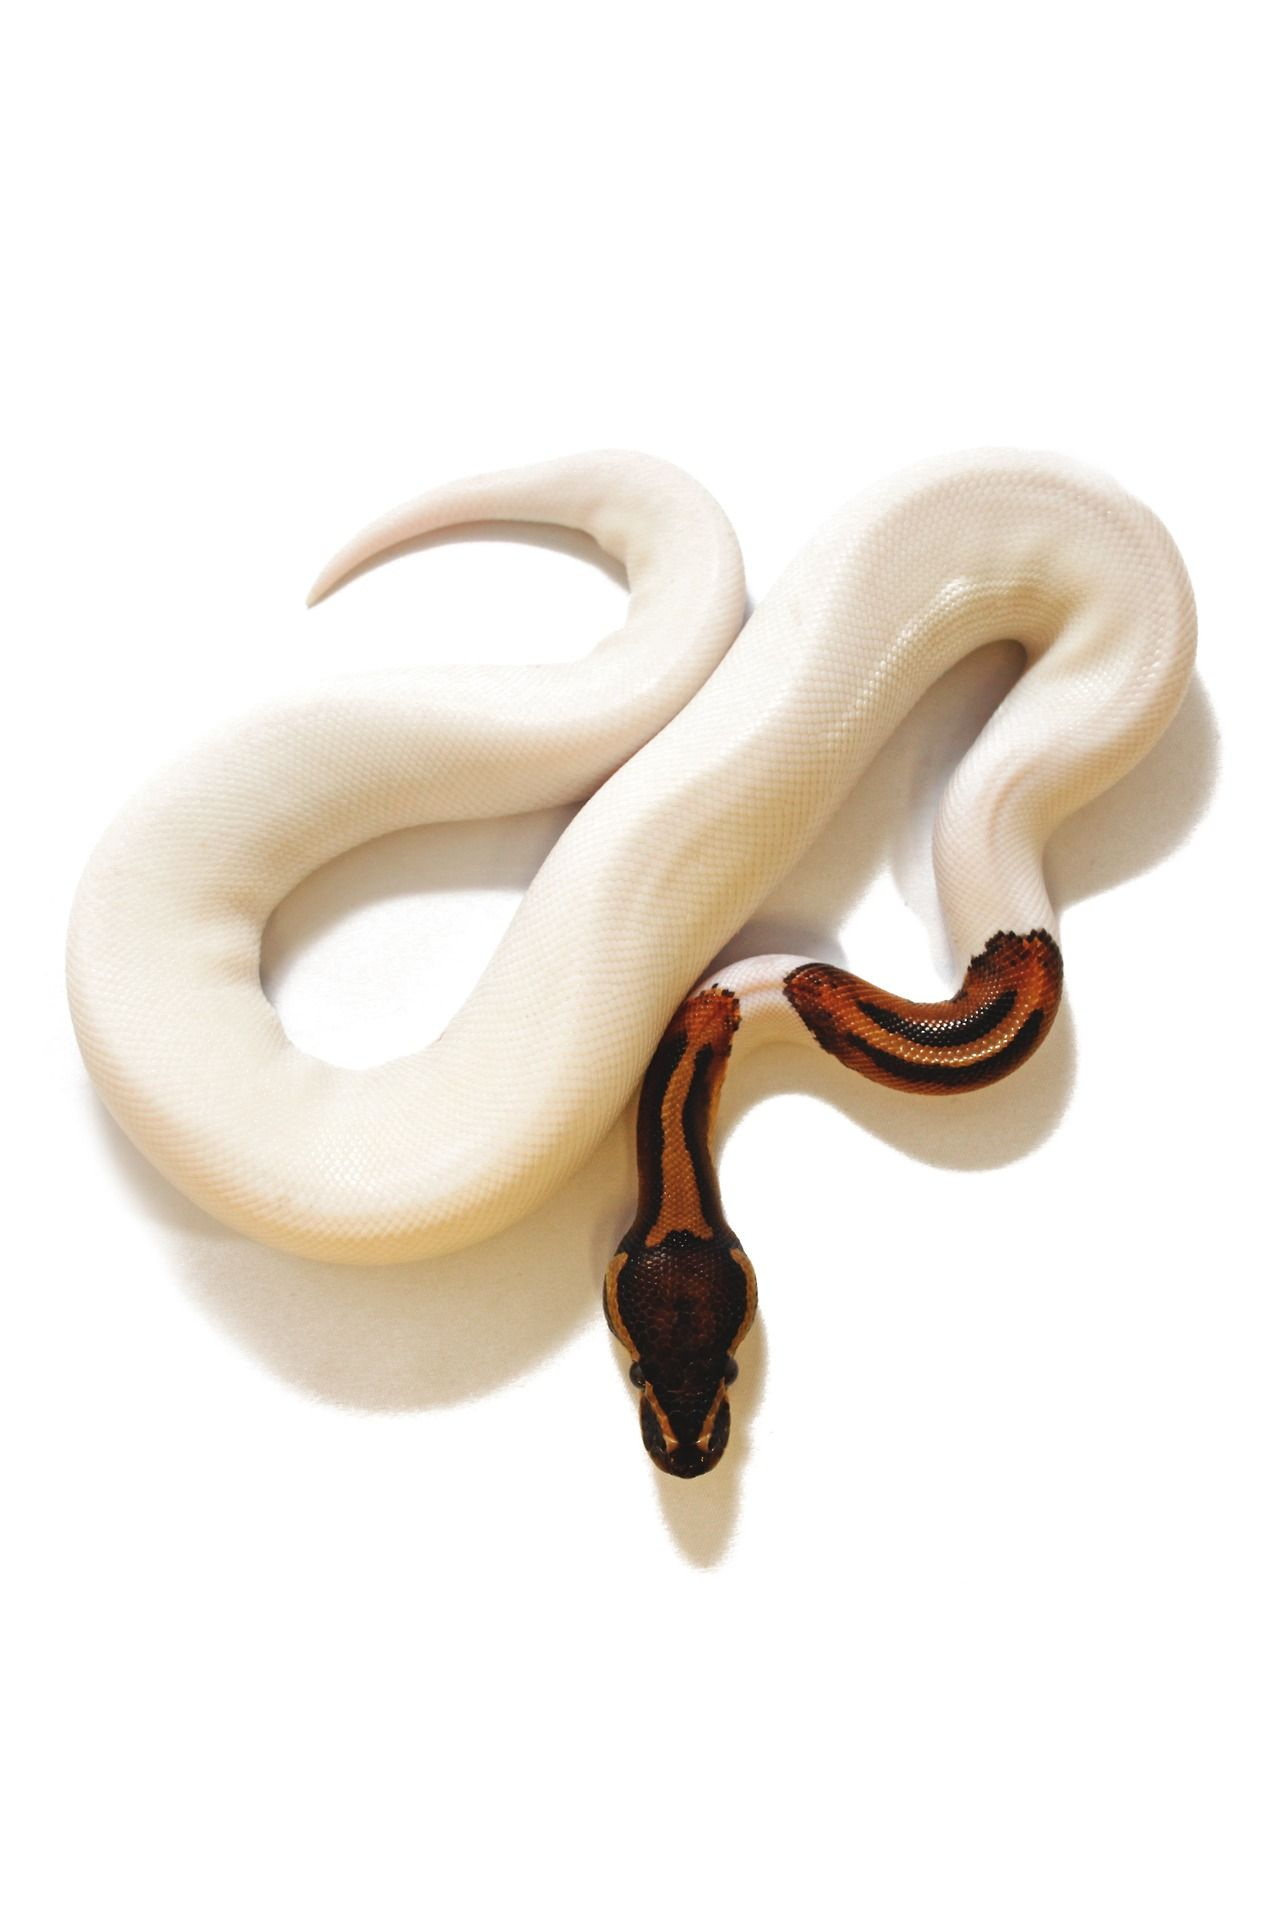 pied ball python | Nature | Pinterest | Serpientes, Animales y Reptiles